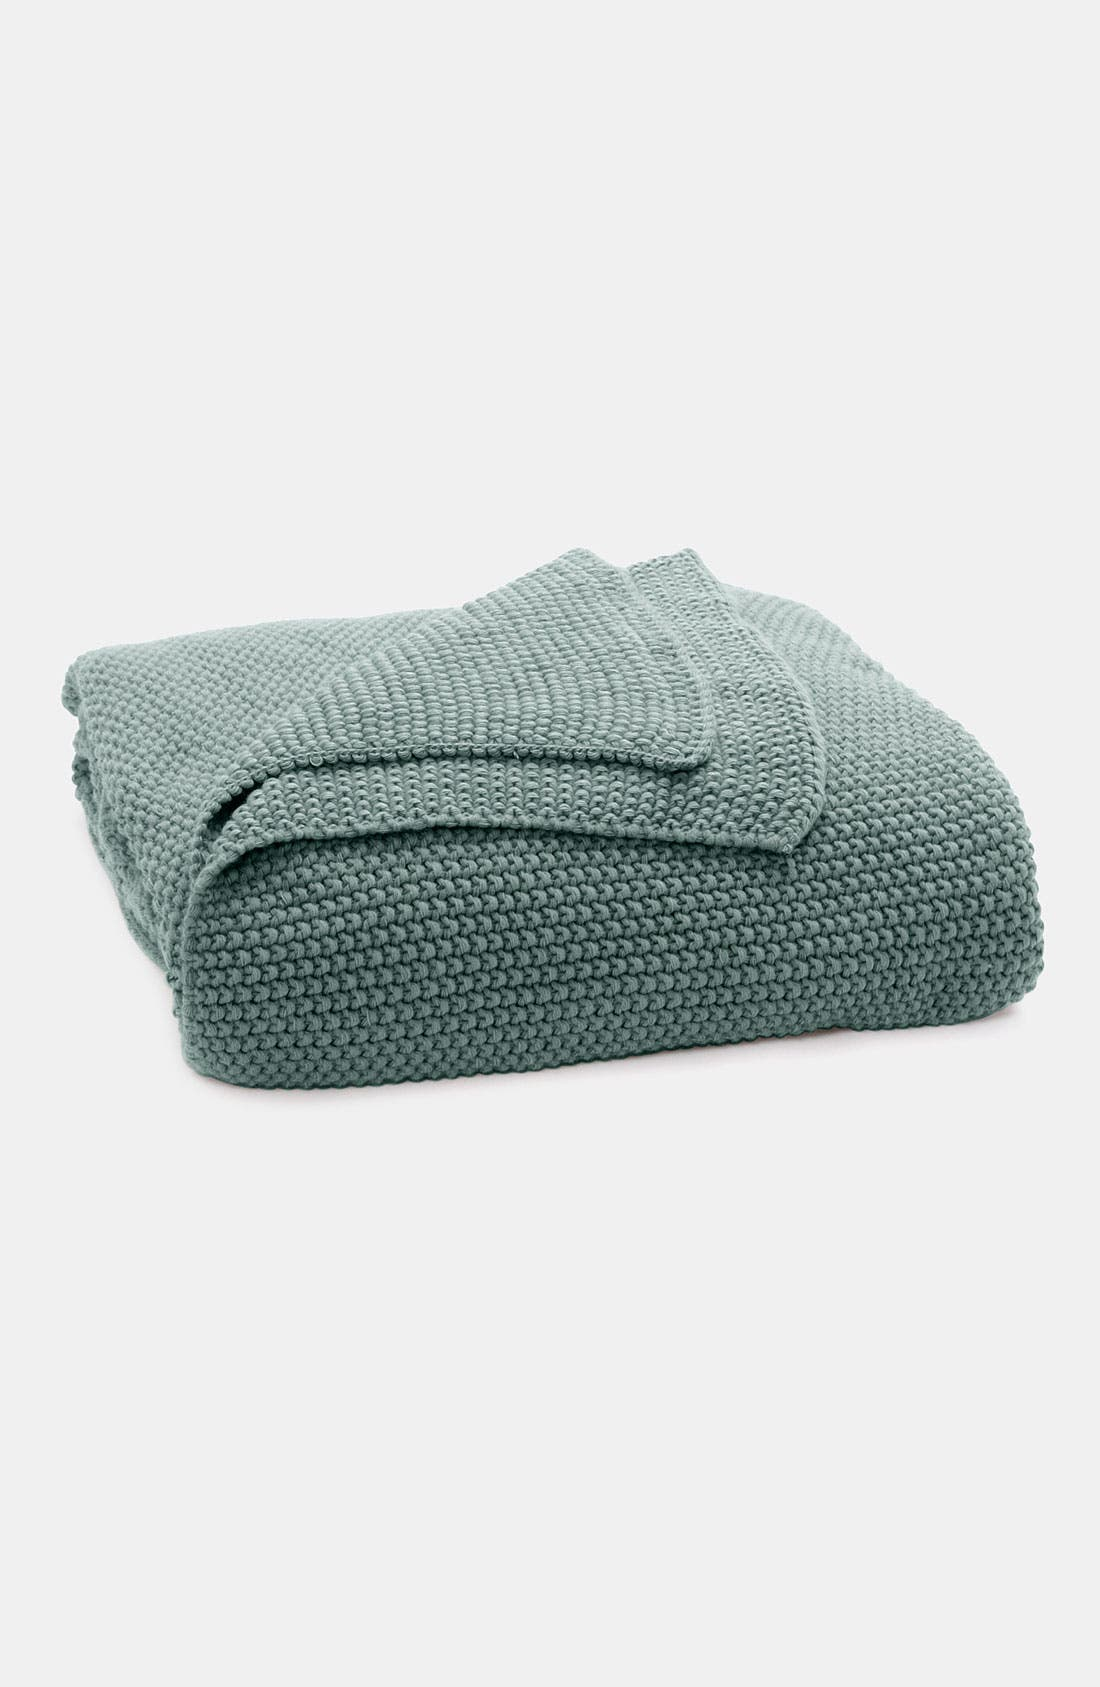 Alternate Image 1 Selected - Donna Karan 'The Essentials' Knit Throw